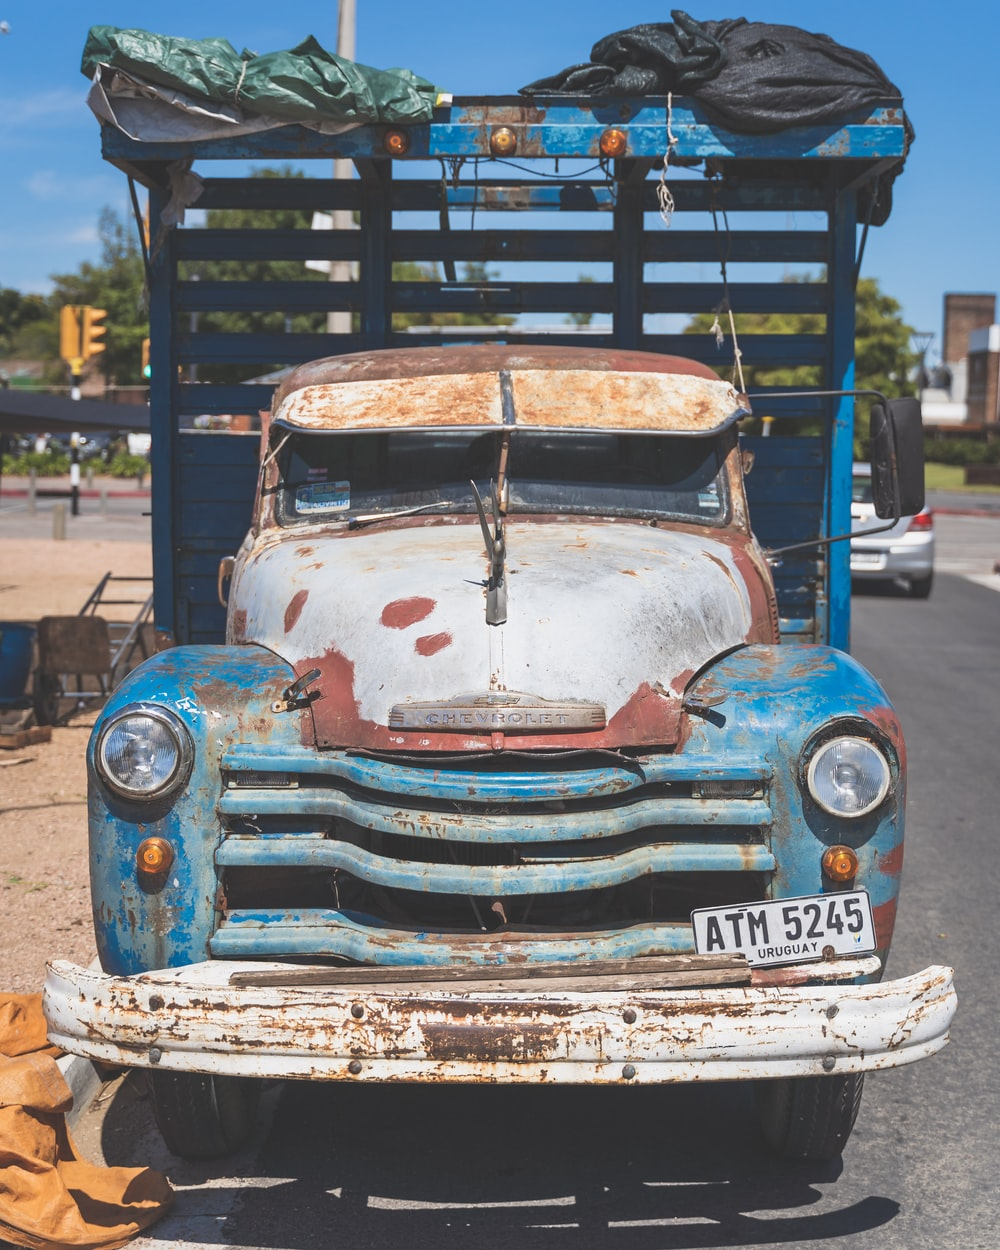 blue and white vintage car